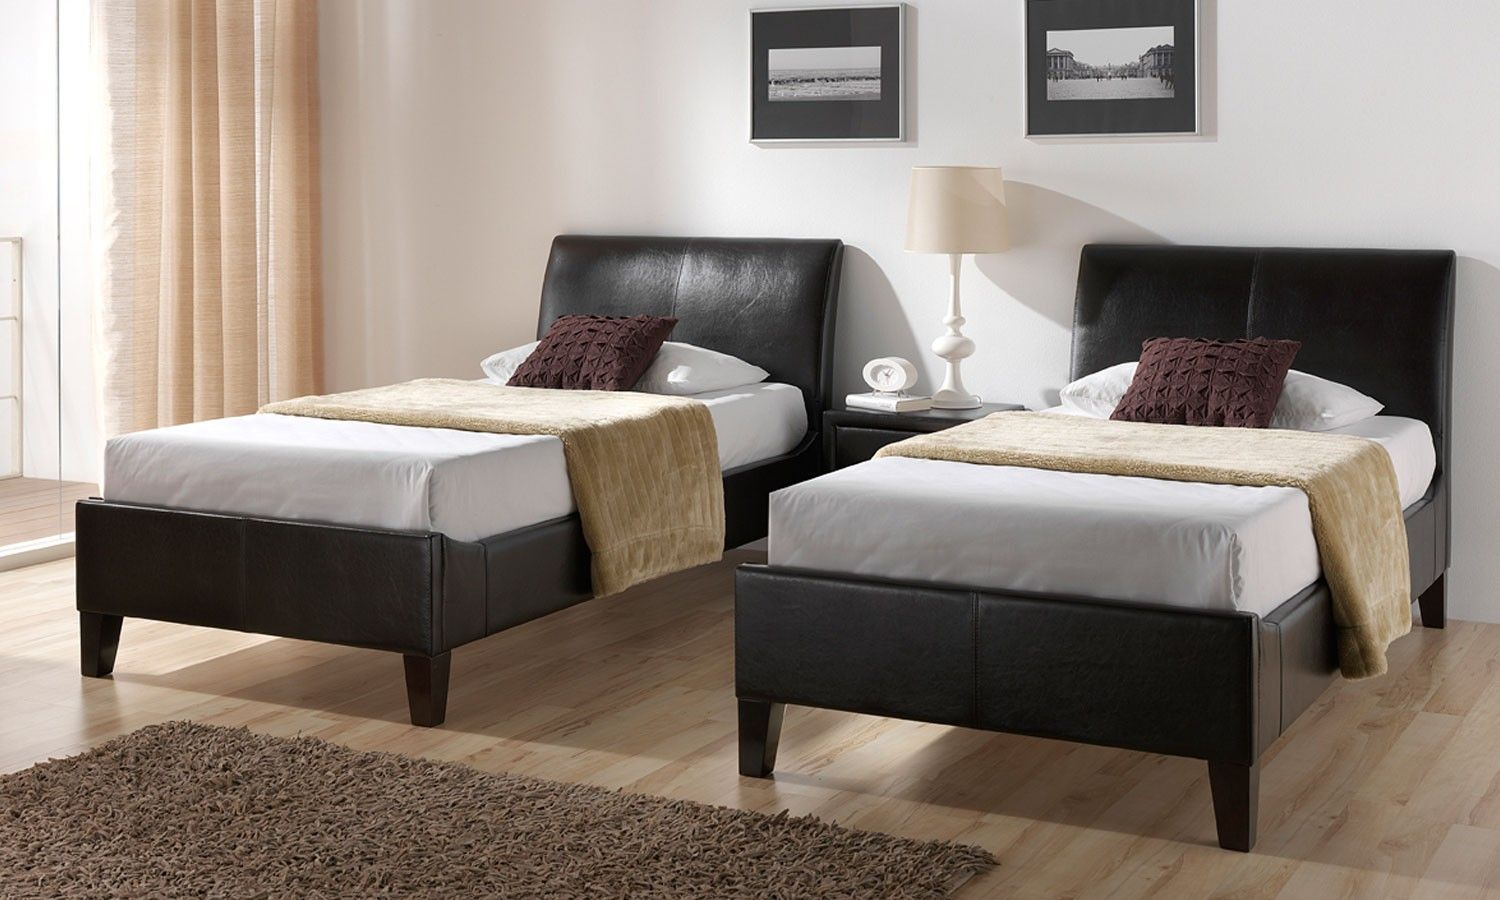 Double bed furniture design - Stylish Double Leather Black Single Bed Designs Hard Wood Flooring Single Bedroom Designs Modern